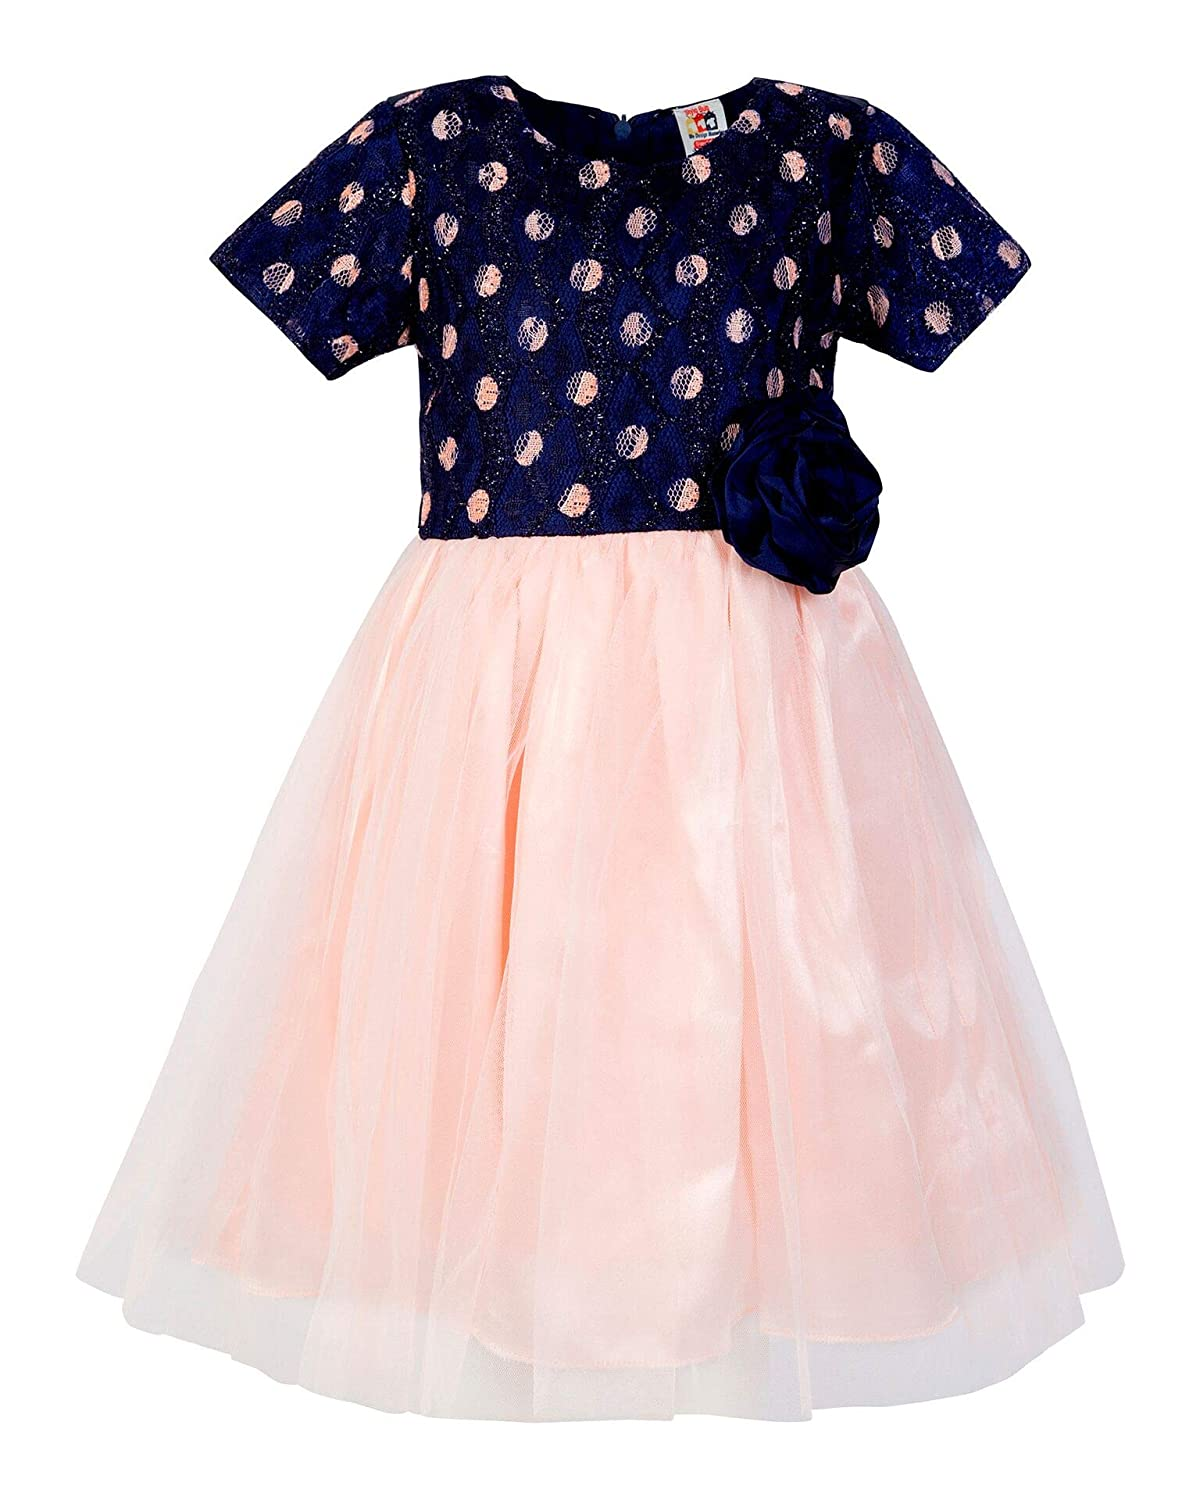 183319dfa94a0 Stylo Bug Kids Dress, Short Sleeve Polka Dot Printed Round Neck Dress for  Girls, Pink: Amazon.in: Clothing & Accessories